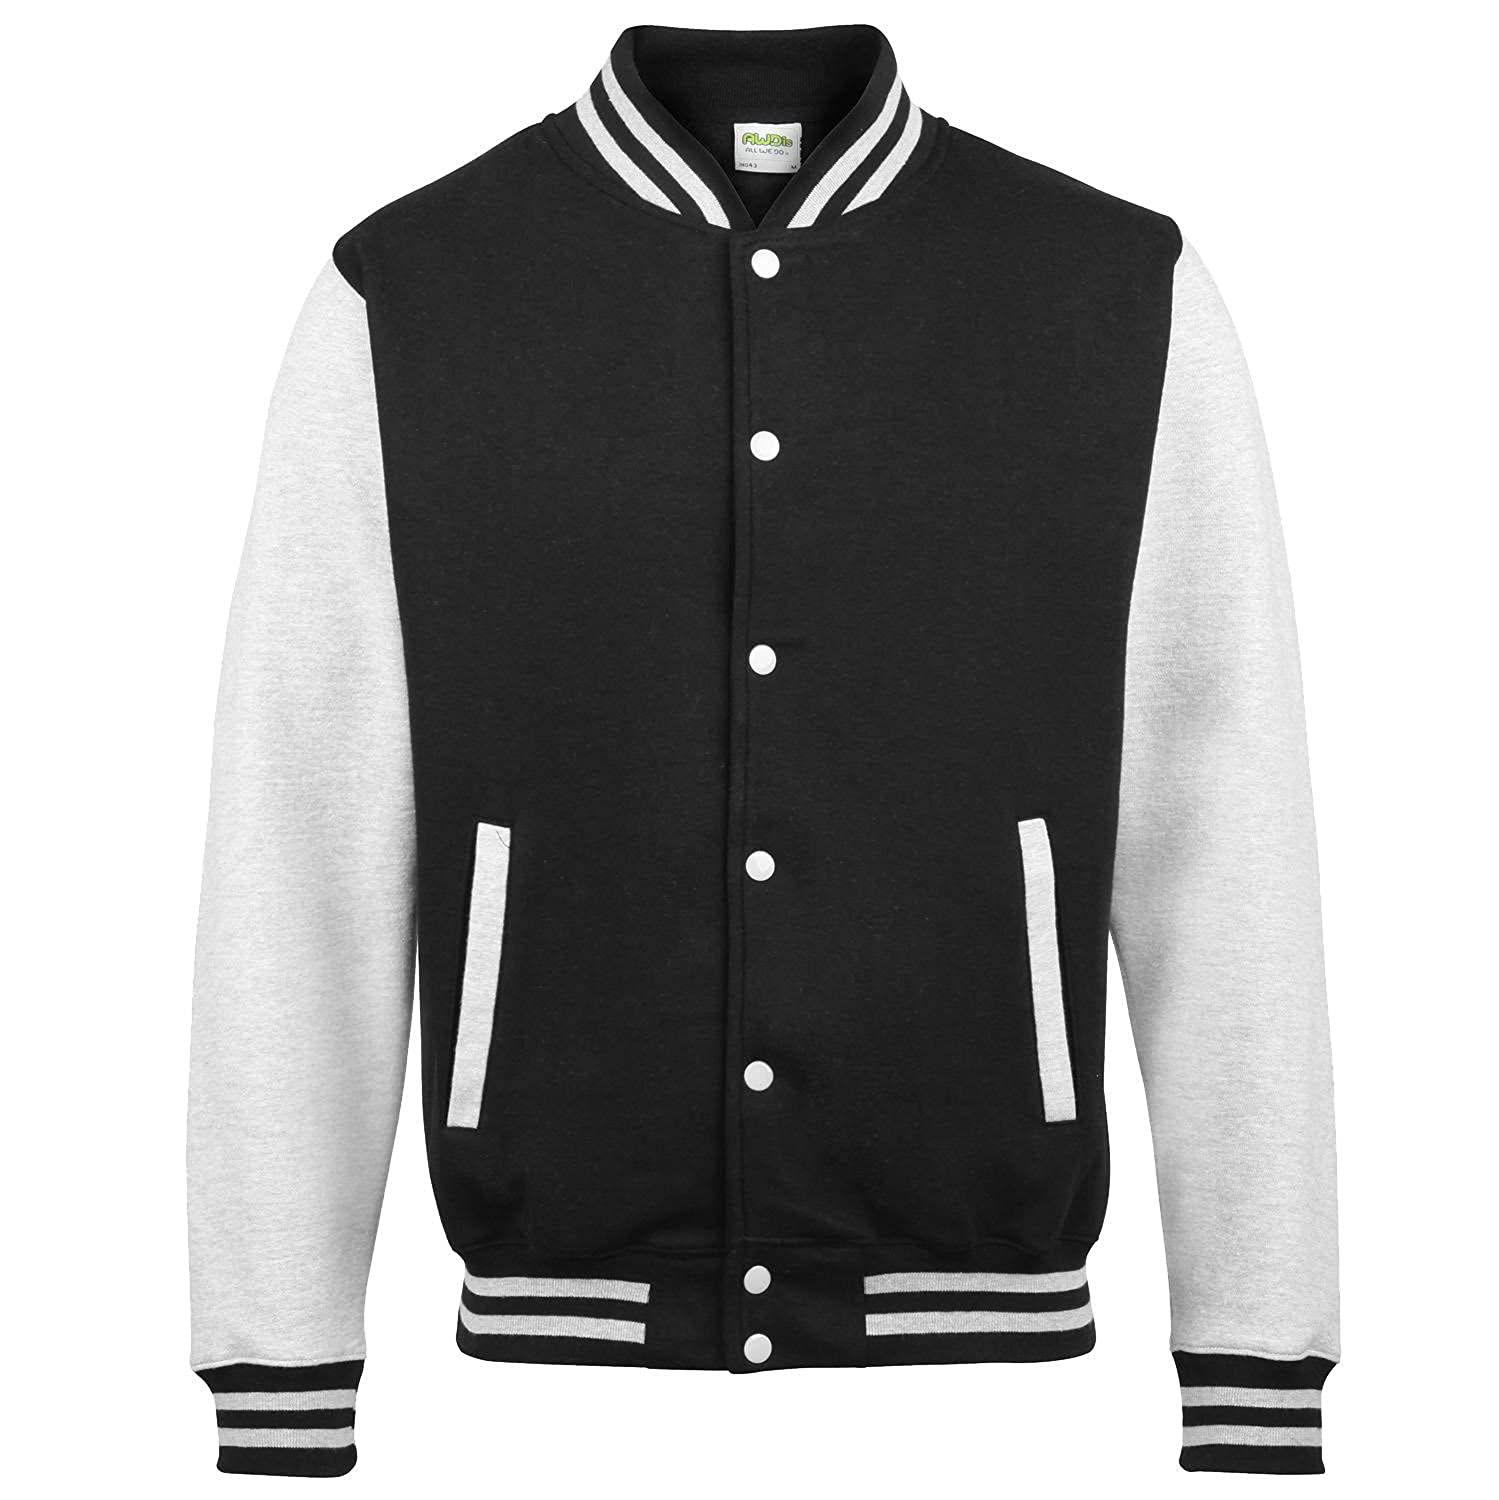 Awdis Varsity Jacket Oxford Navy / White 2XL at Amazon ...